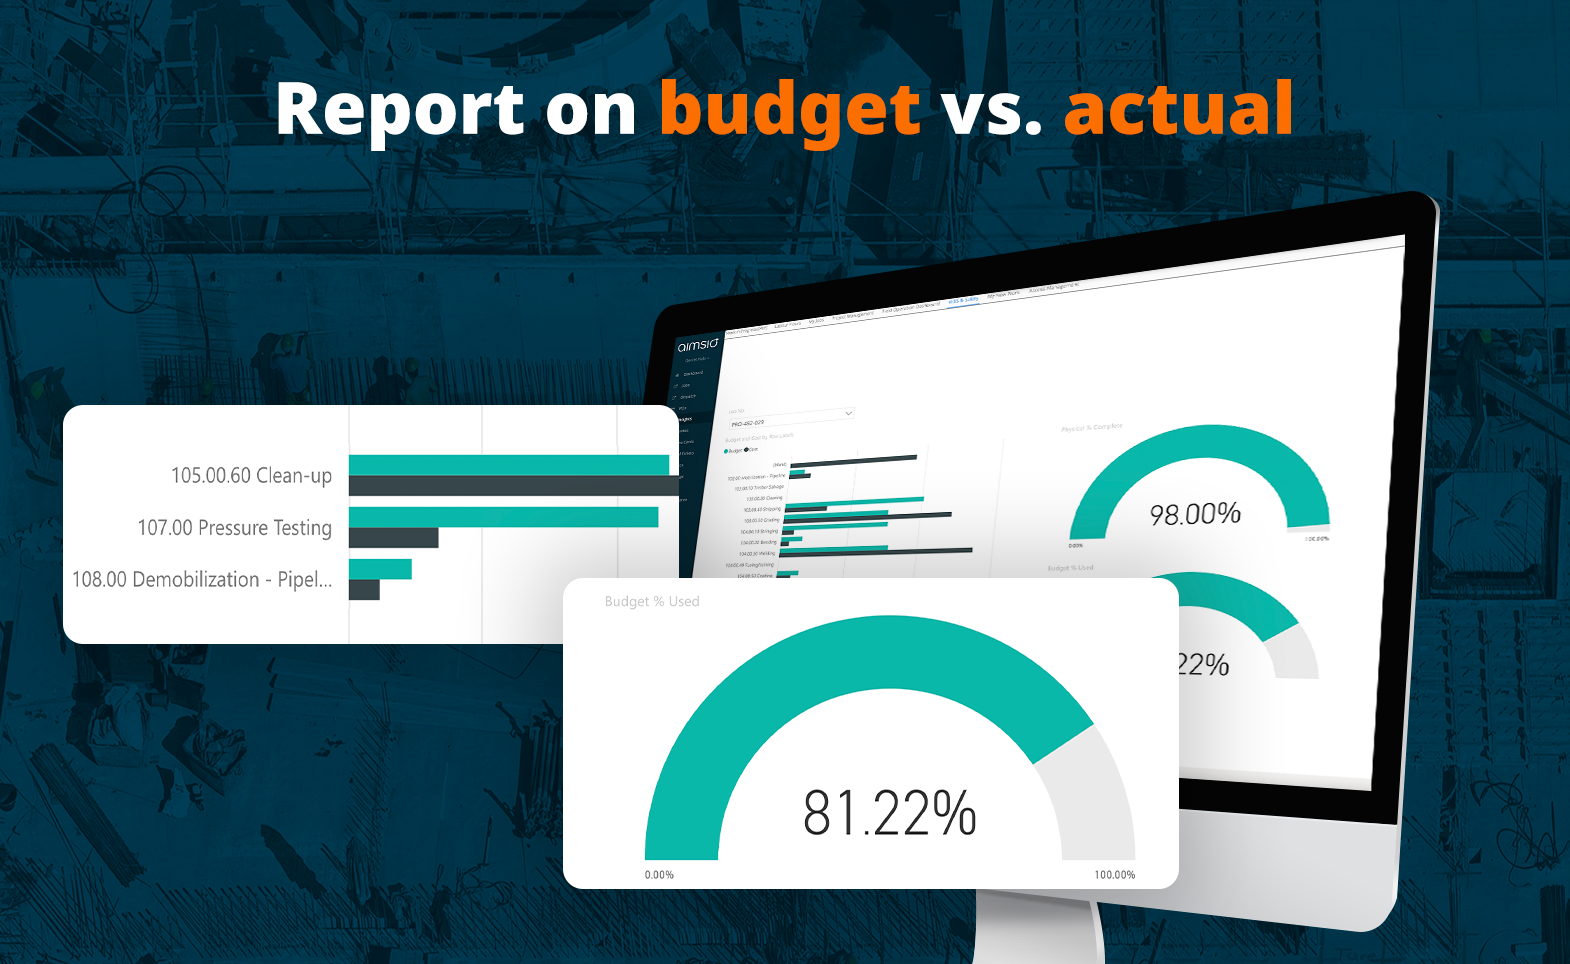 Aimsio is more than a field ticketing platform - it's also a reporting system. Use the reports to keep track of budget vs. actual to be proactive.